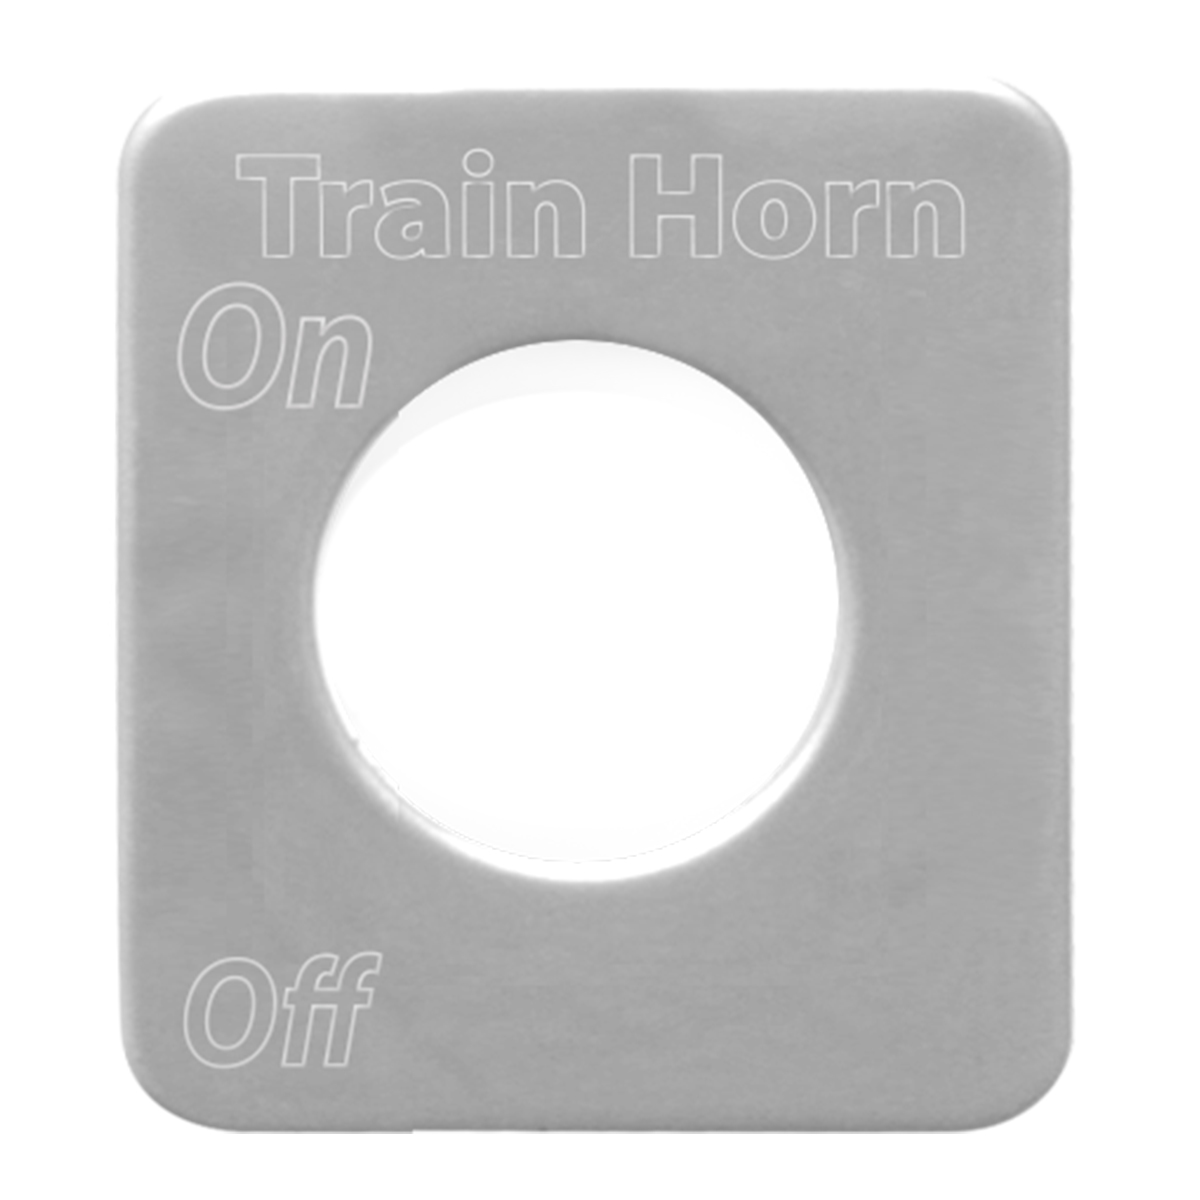 68523 Stainless Steel Train Horn Switch Plate for KW